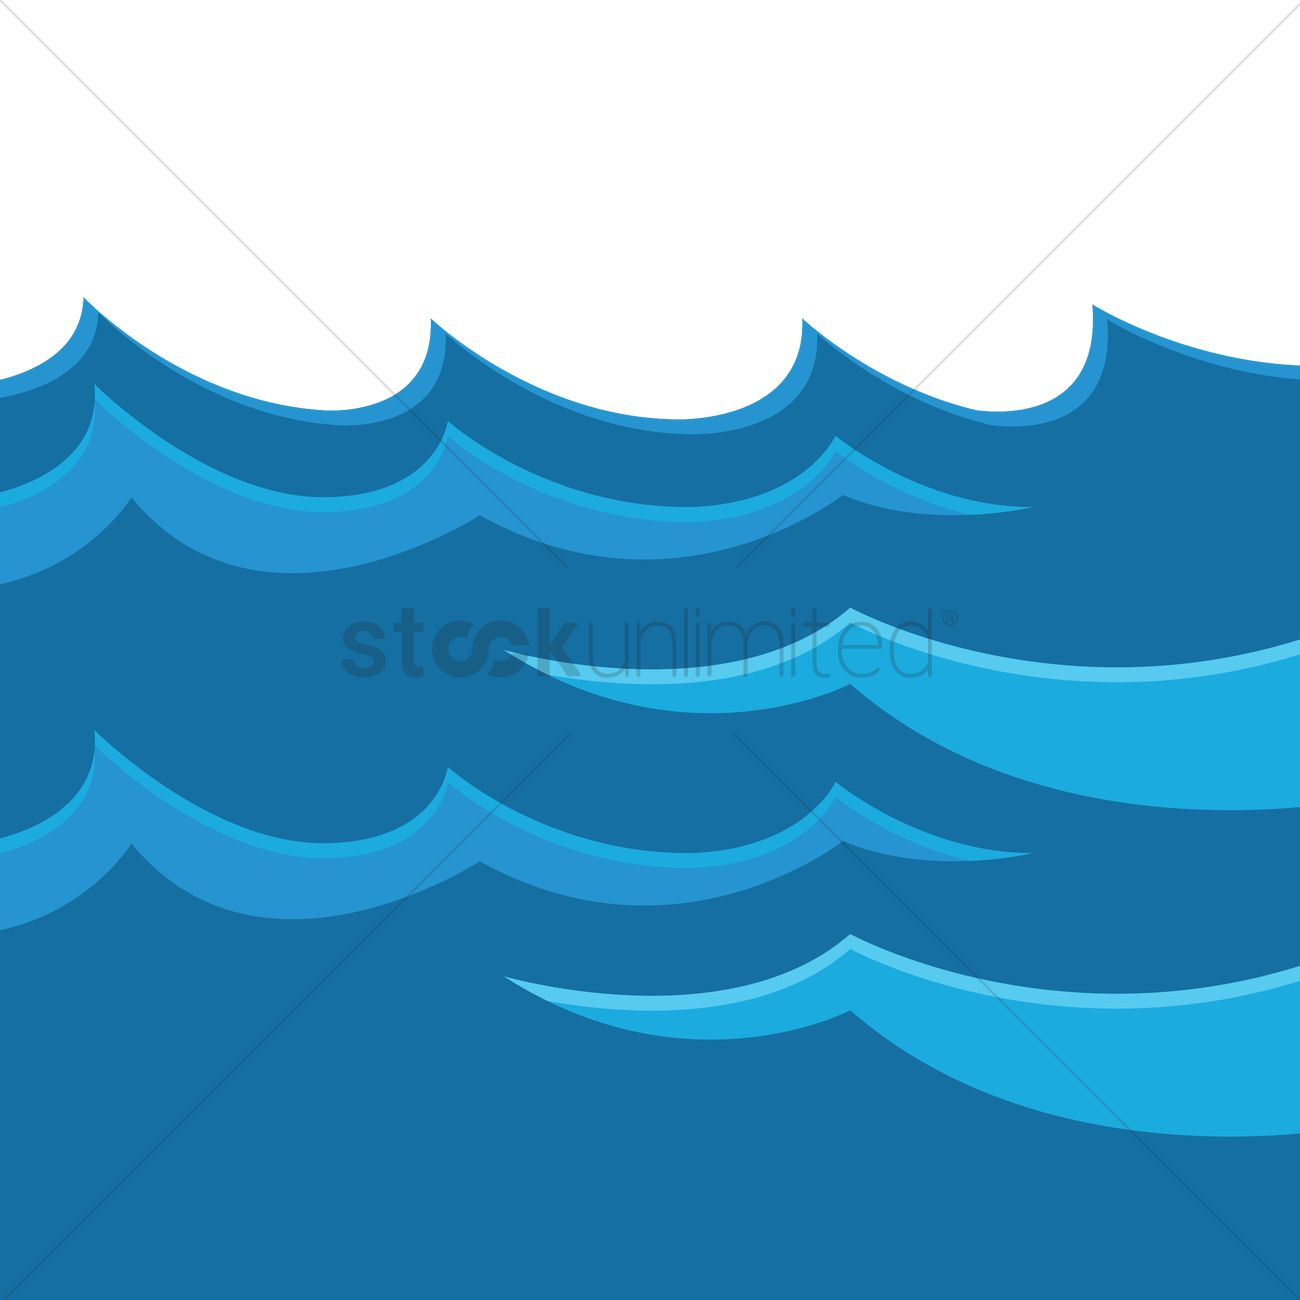 water waves vector image 1526926 stockunlimited rh stockunlimited com Beach Waves Clip Art water waves clipart